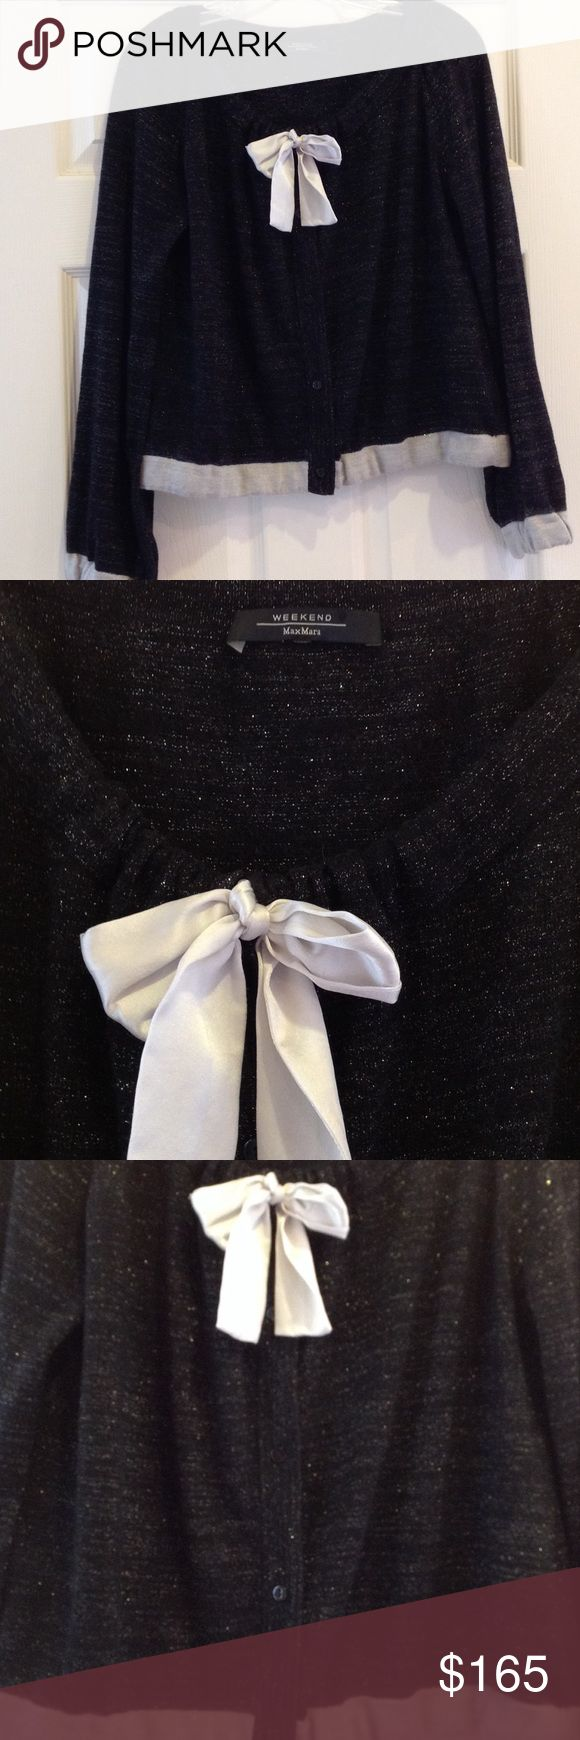 Weekend MaxMara women's black sweater. Size L. Weekend MaxMara women's black sweater with beige trim at bottom of sleeves and sweater. Button front closure with drawstring cream bow at neckline. Elastic at bottom of sweater and sleeves. Gold metallic thread throughout. 48% silk; 28% nylon; 14% metal; 5% wool; 5% angora. Size L. Weekend MaxMara Sweaters Cardigans